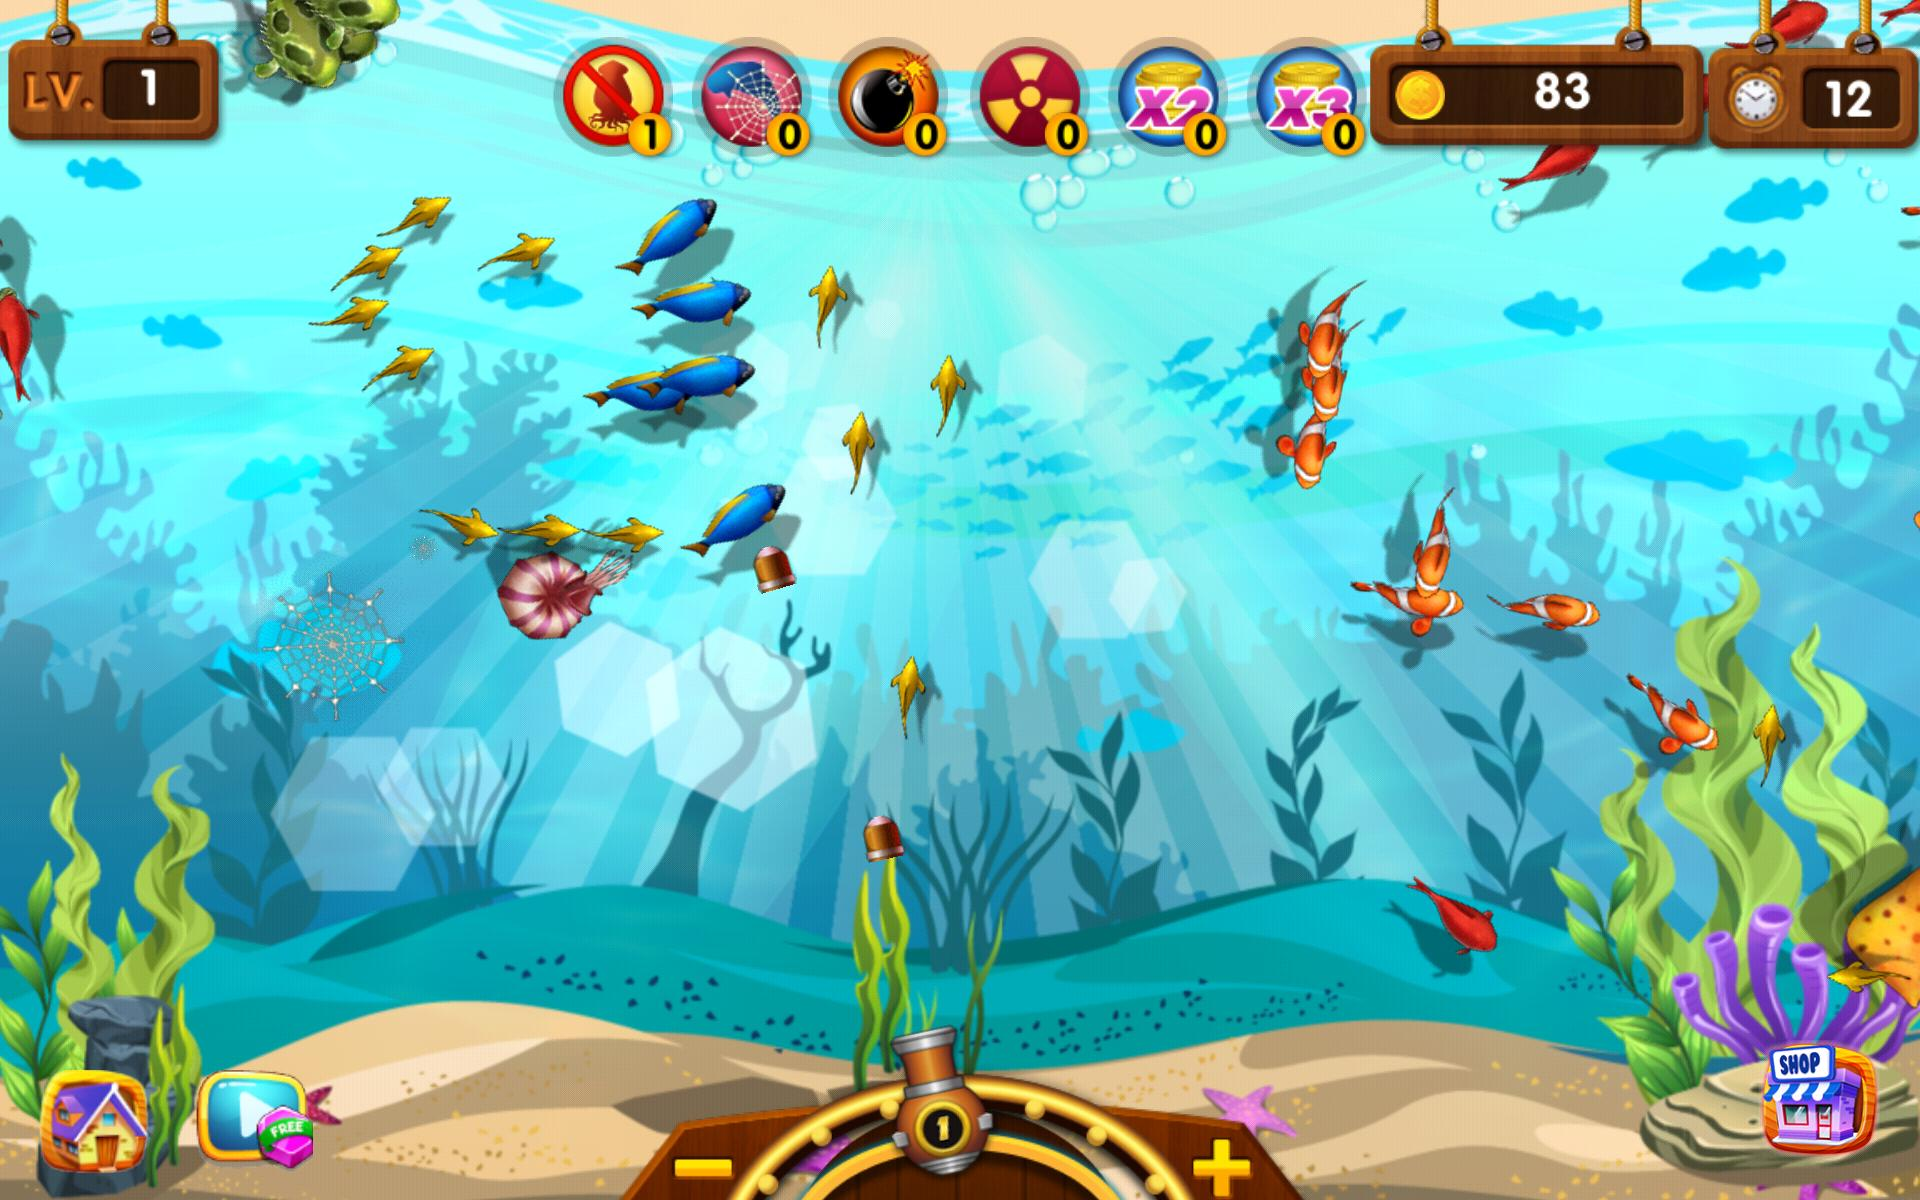 King of Fish Shooting Game for Android - APK Download